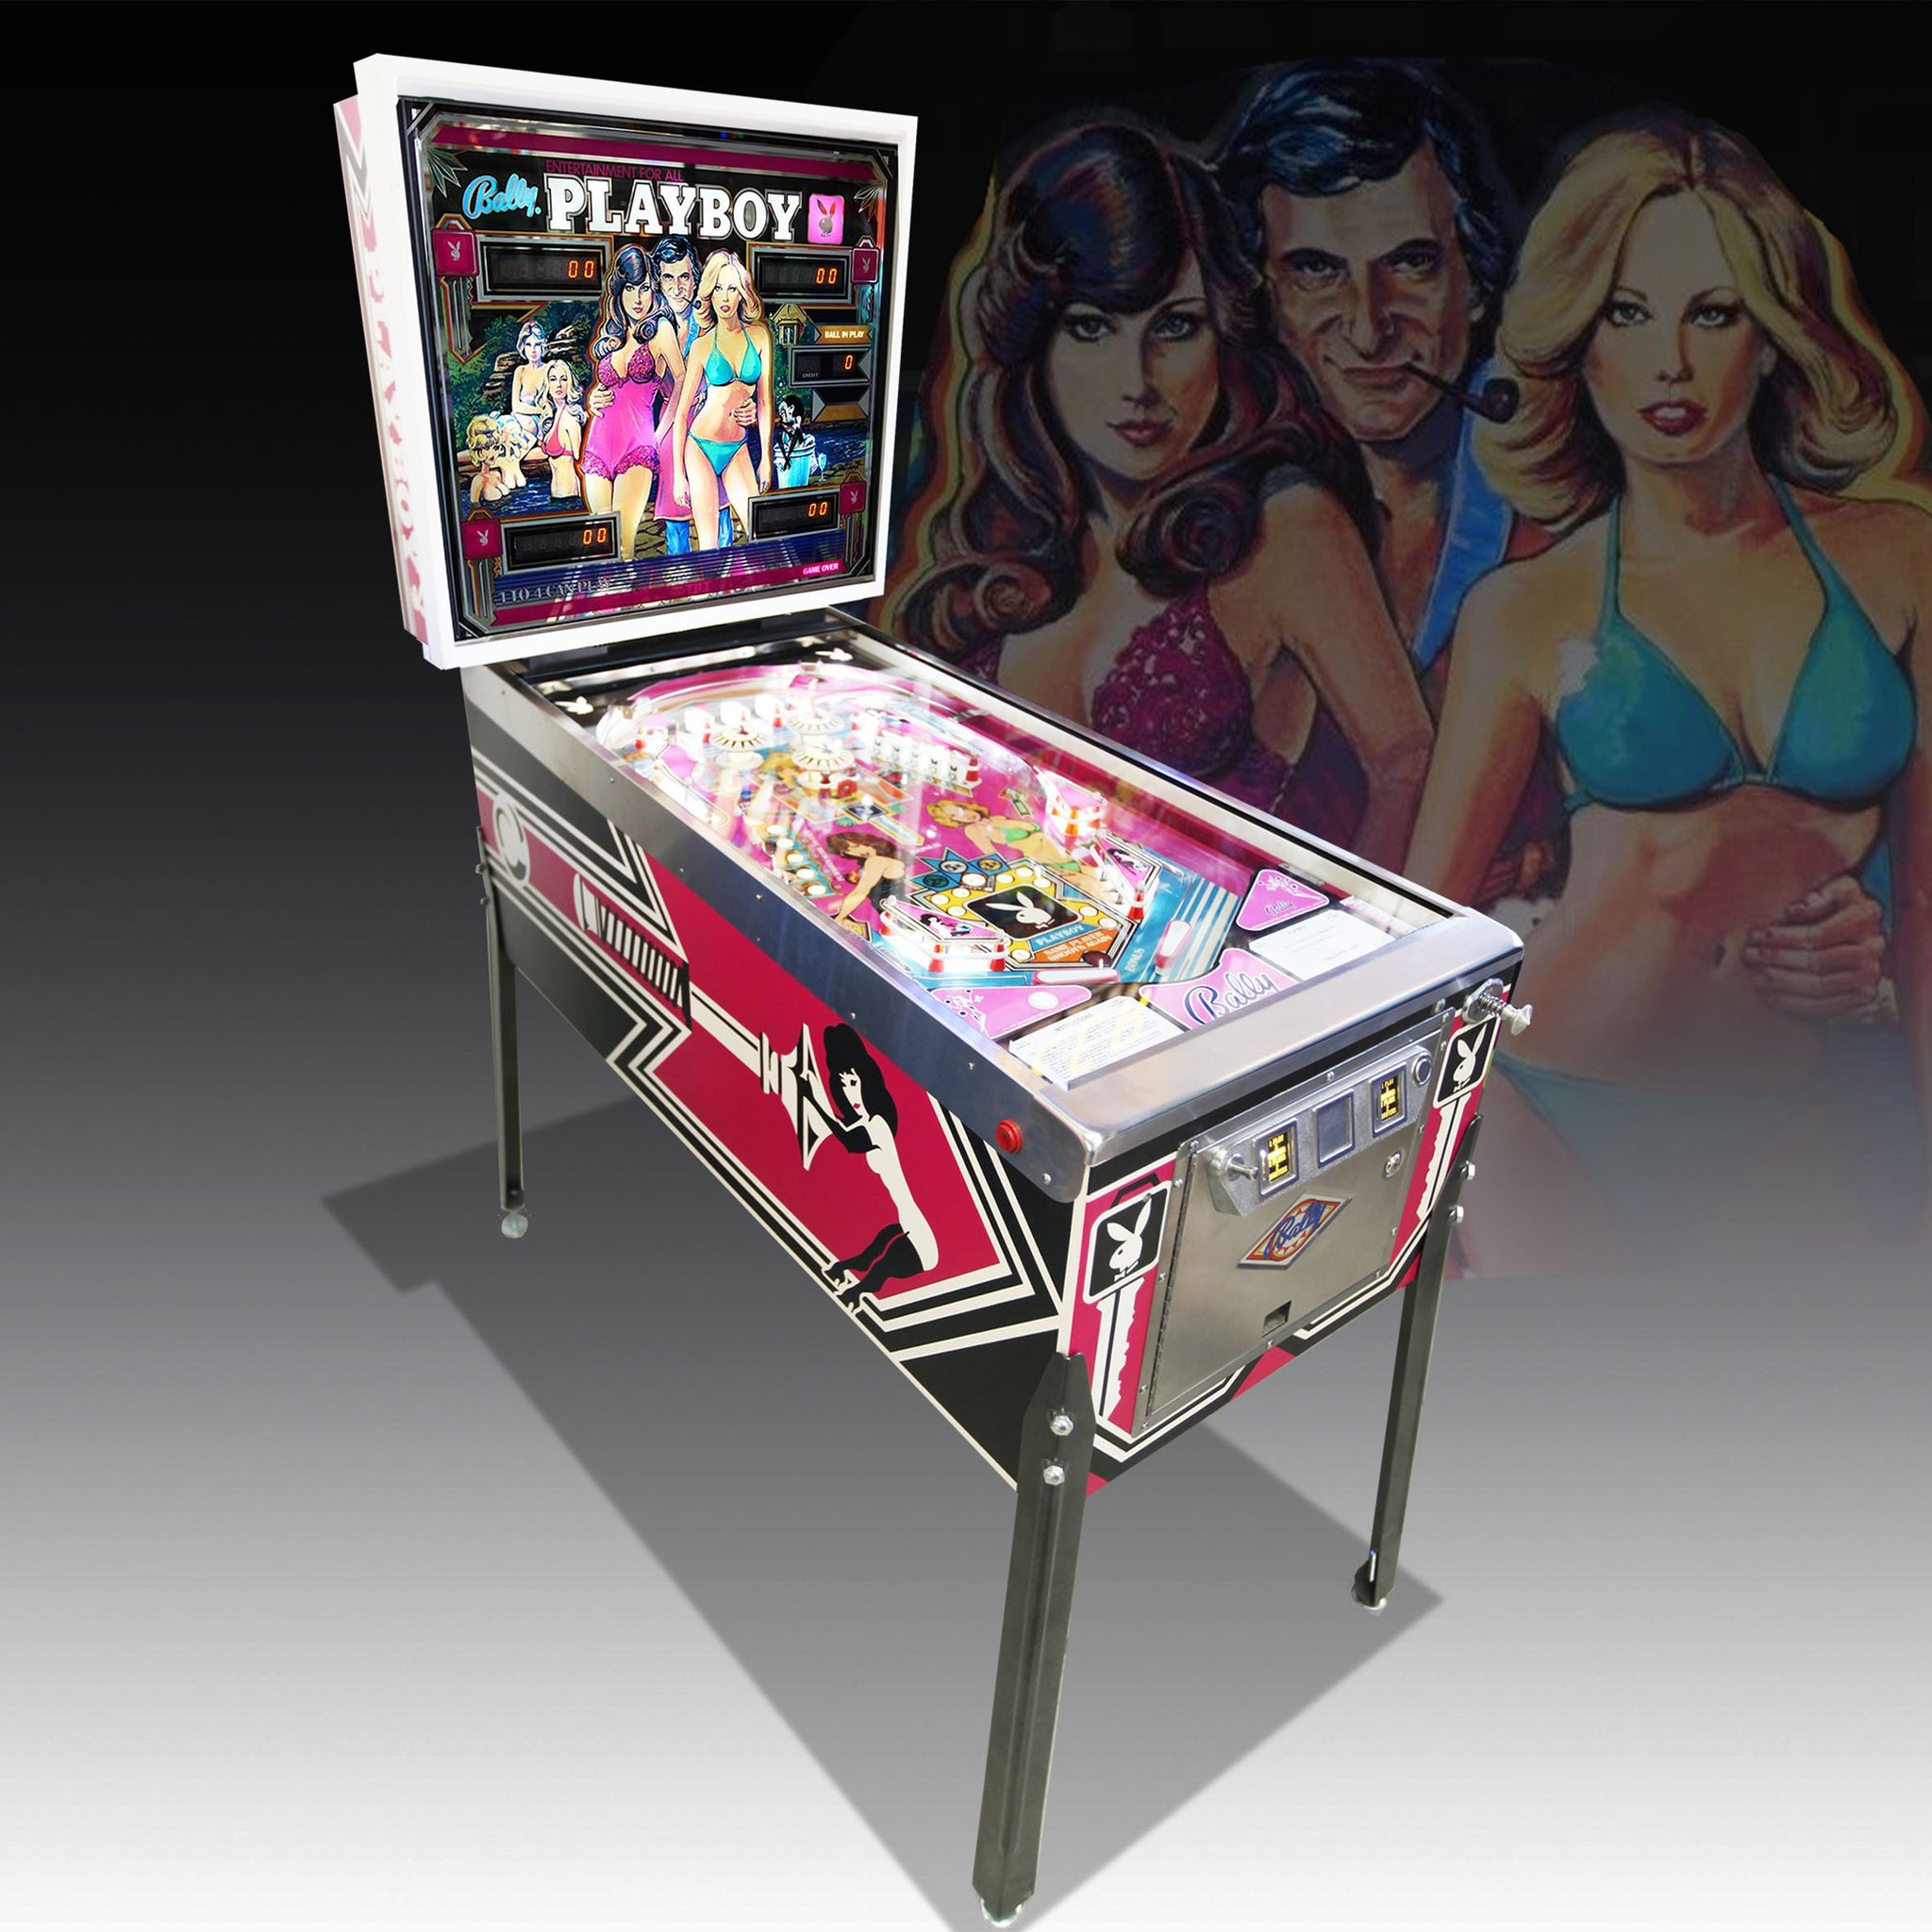 1978 Vintage Playboy Pinball Machine by Bally